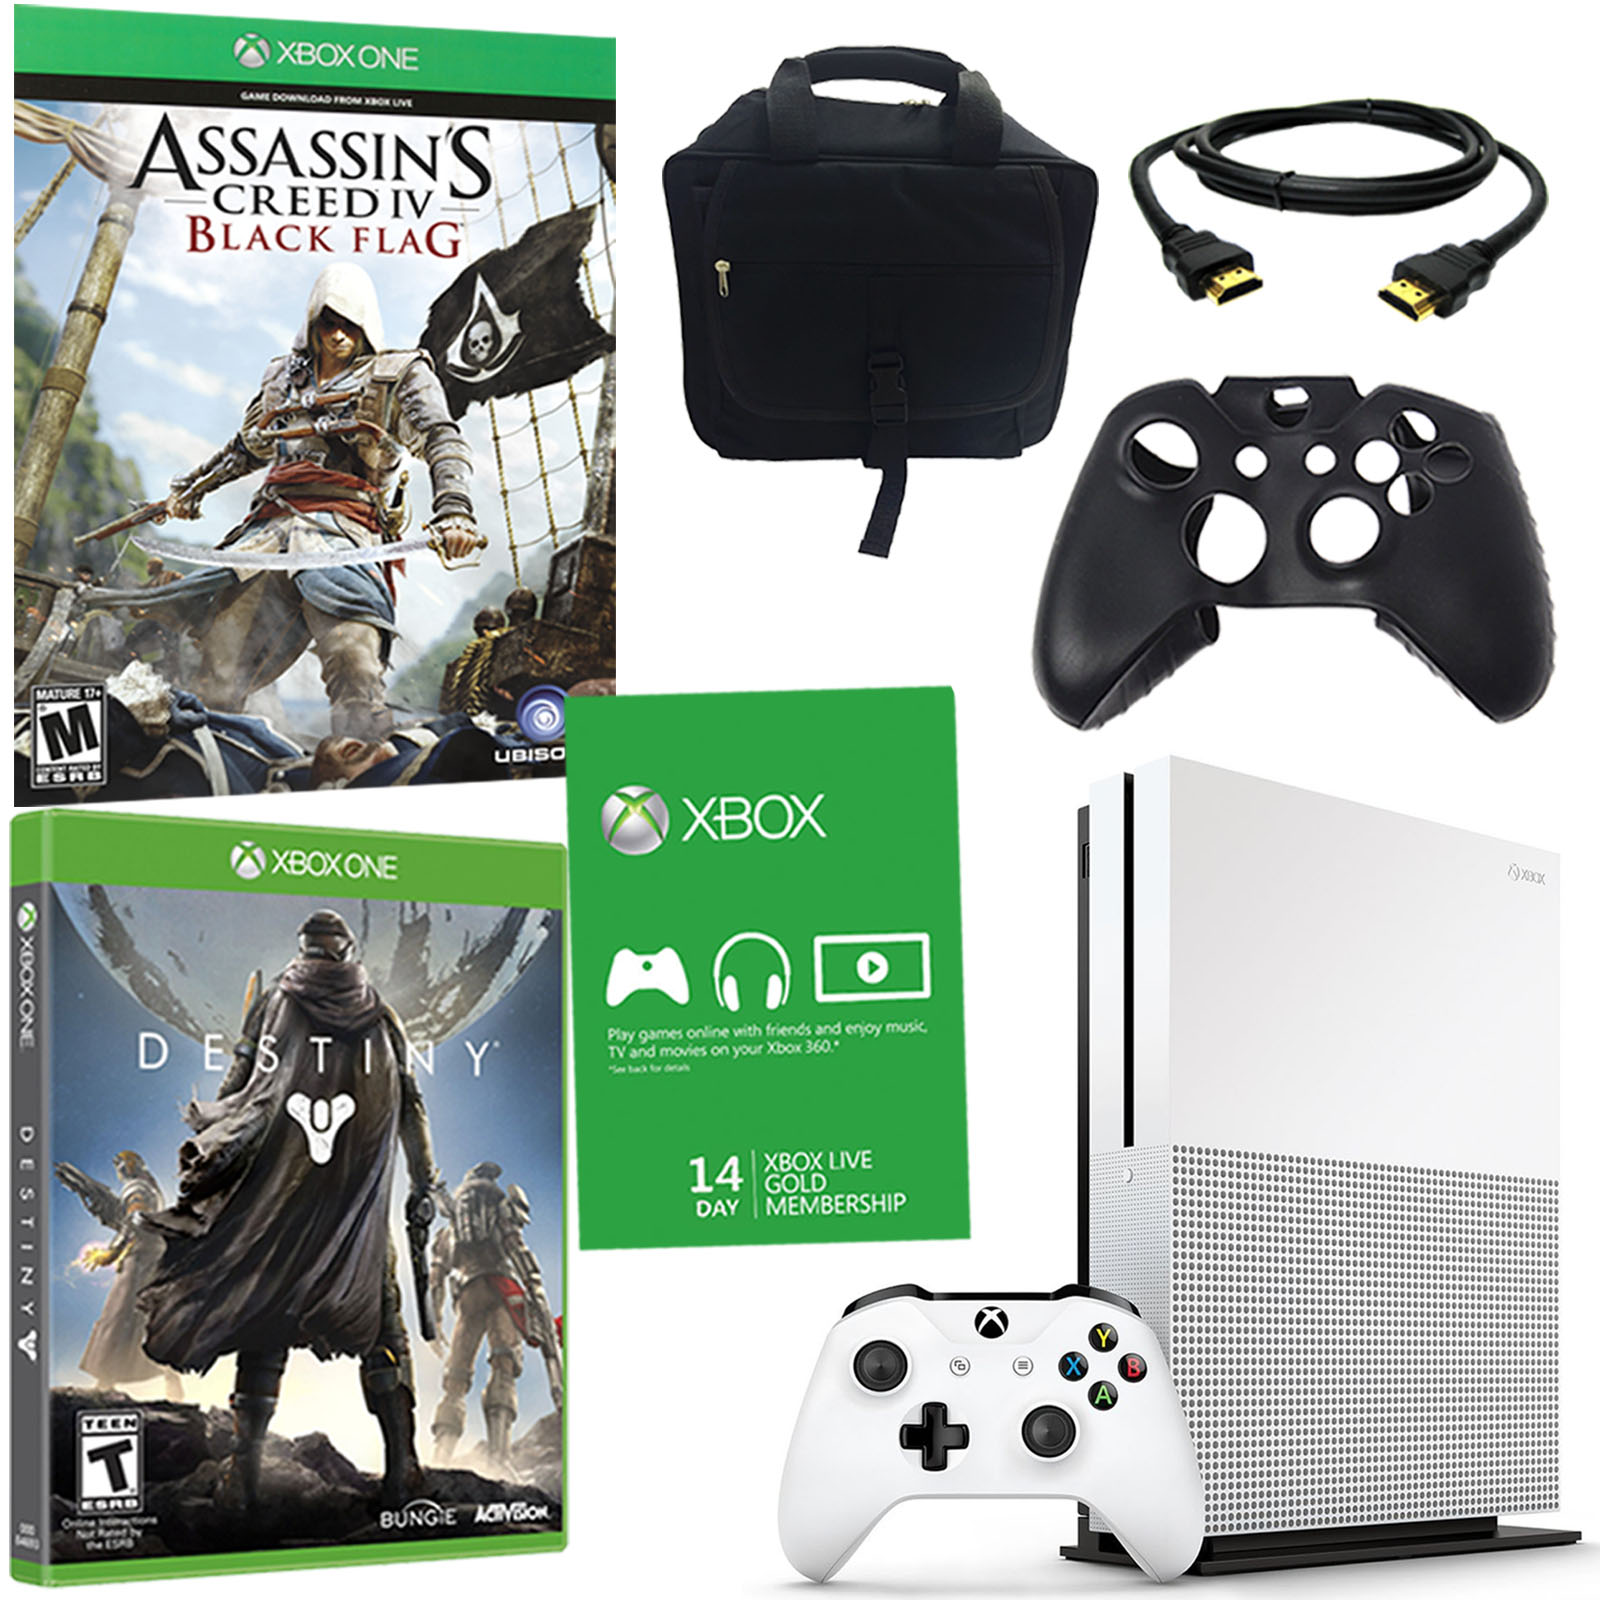 Xbox One S 2TB Console with 2 Games and Accessories En Veo y Compro